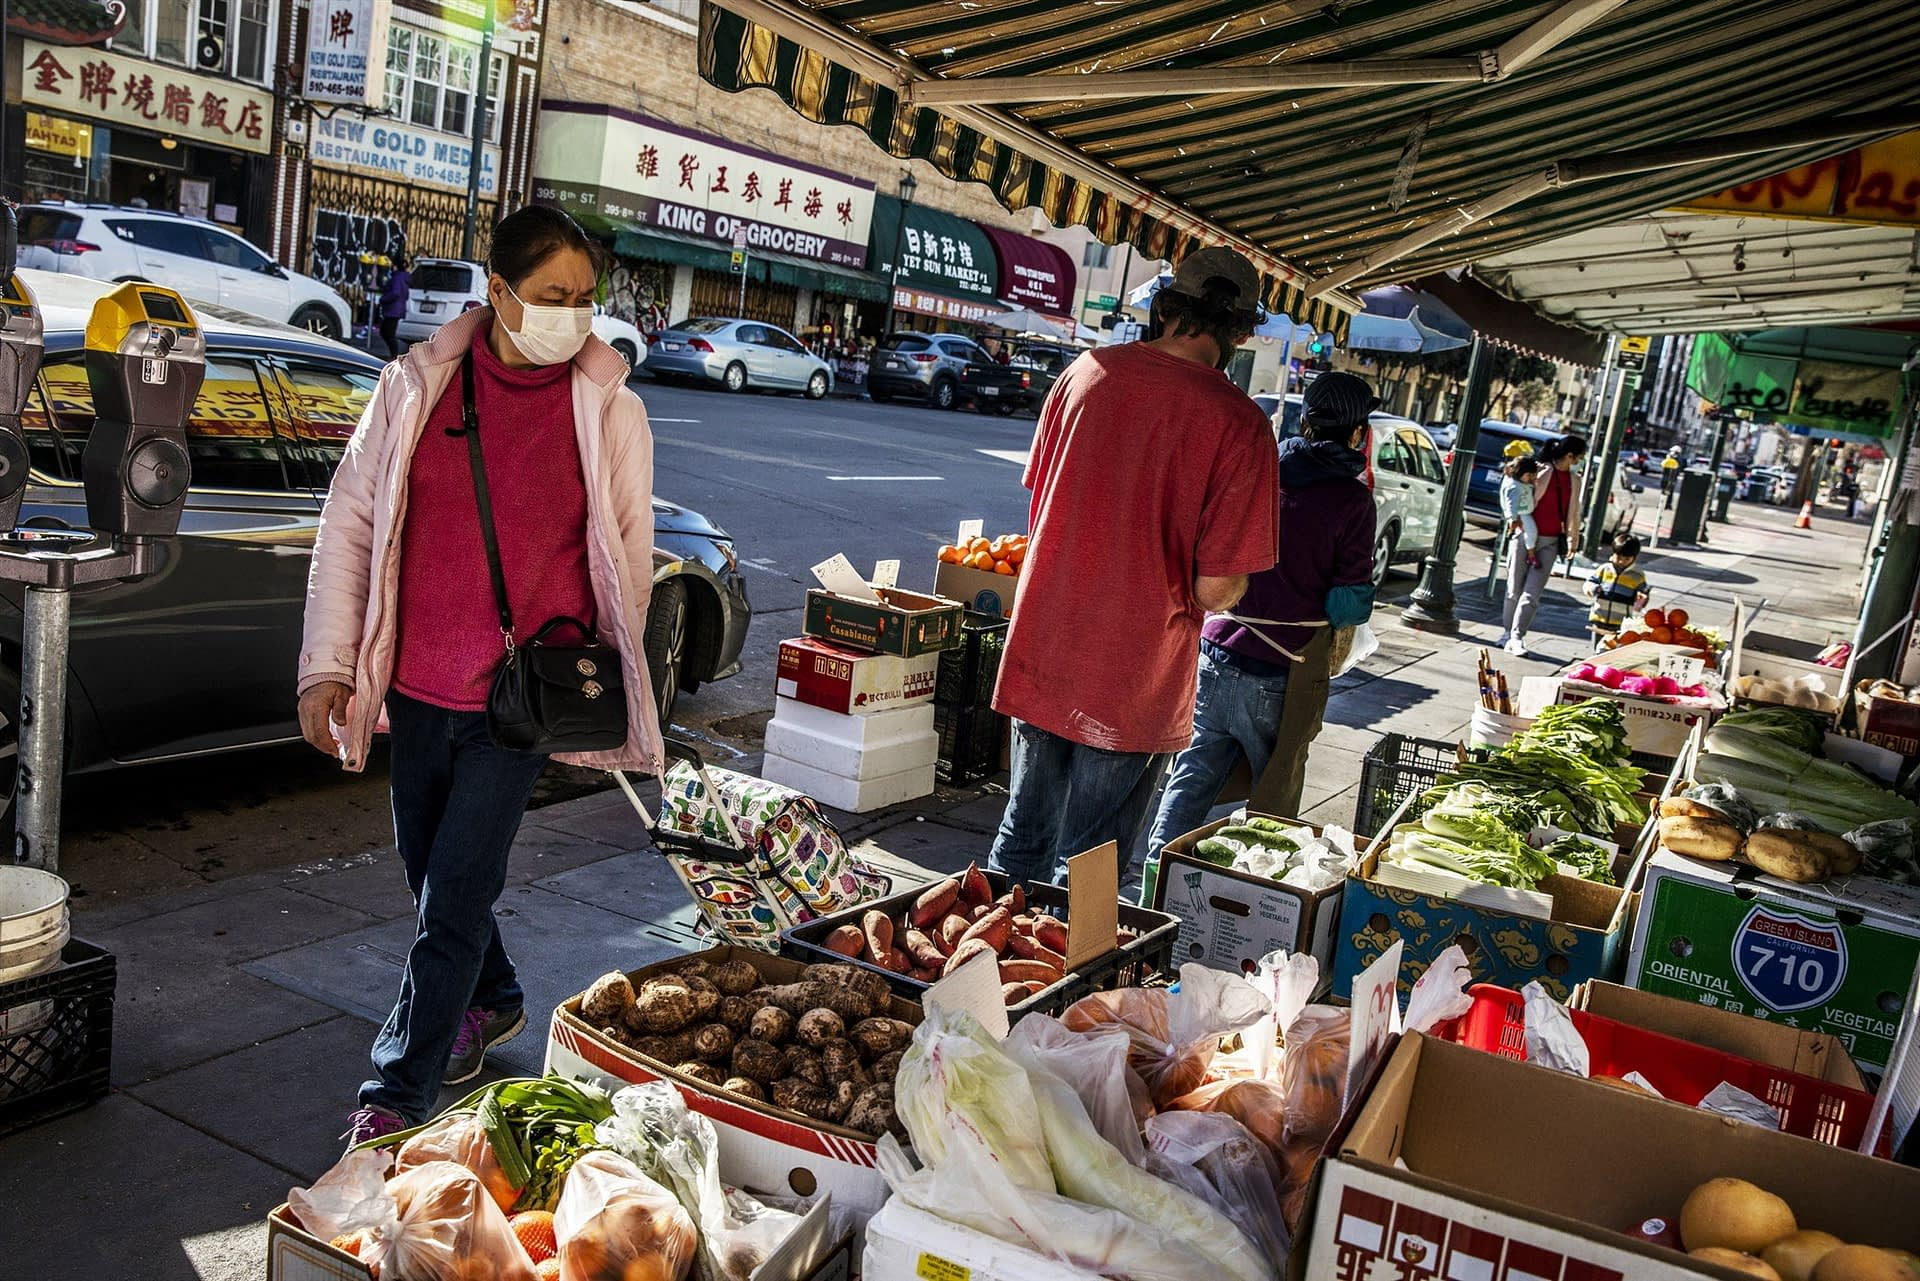 Locals shopping in Oakland Chinatown